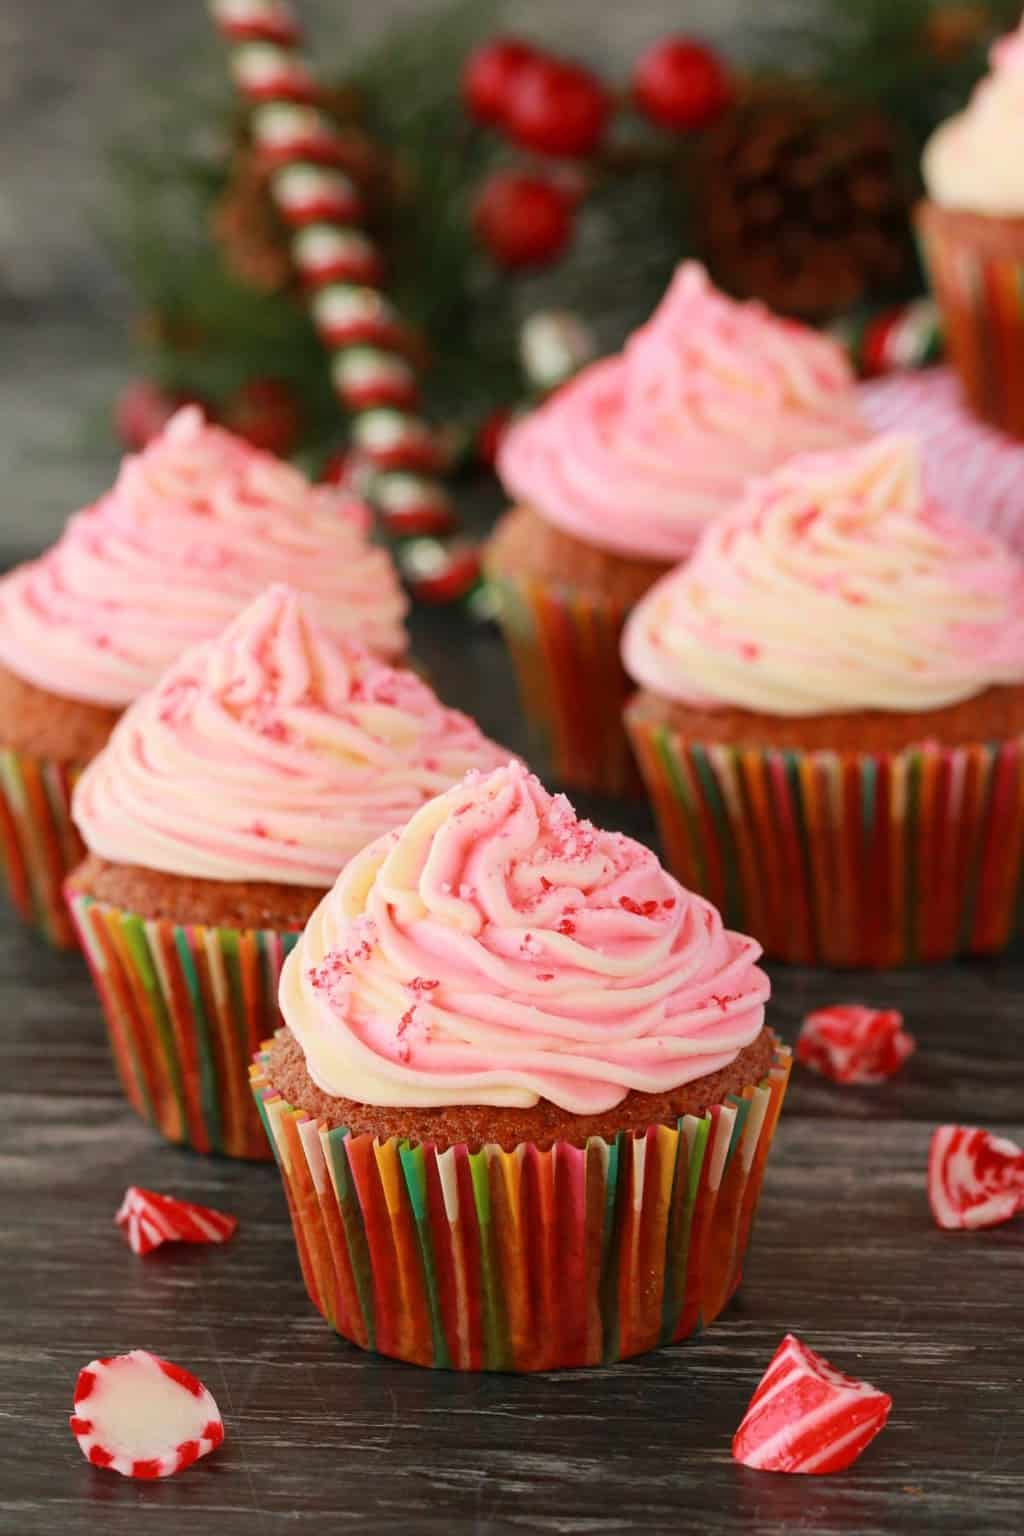 Gorgeous vegan peppermint cupcakes with a pink swirl peppermint frosting! These vegan cupcakes are  moist, spongey and sooo pretty. Loaded with peppermint flavor, this is a winner for anyone who loves peppermint, and cupcakes! #vegan #cupcakes #lovingitvegan #vegancupcakes #vegandessert #dairyfree | lovingitvegan.com